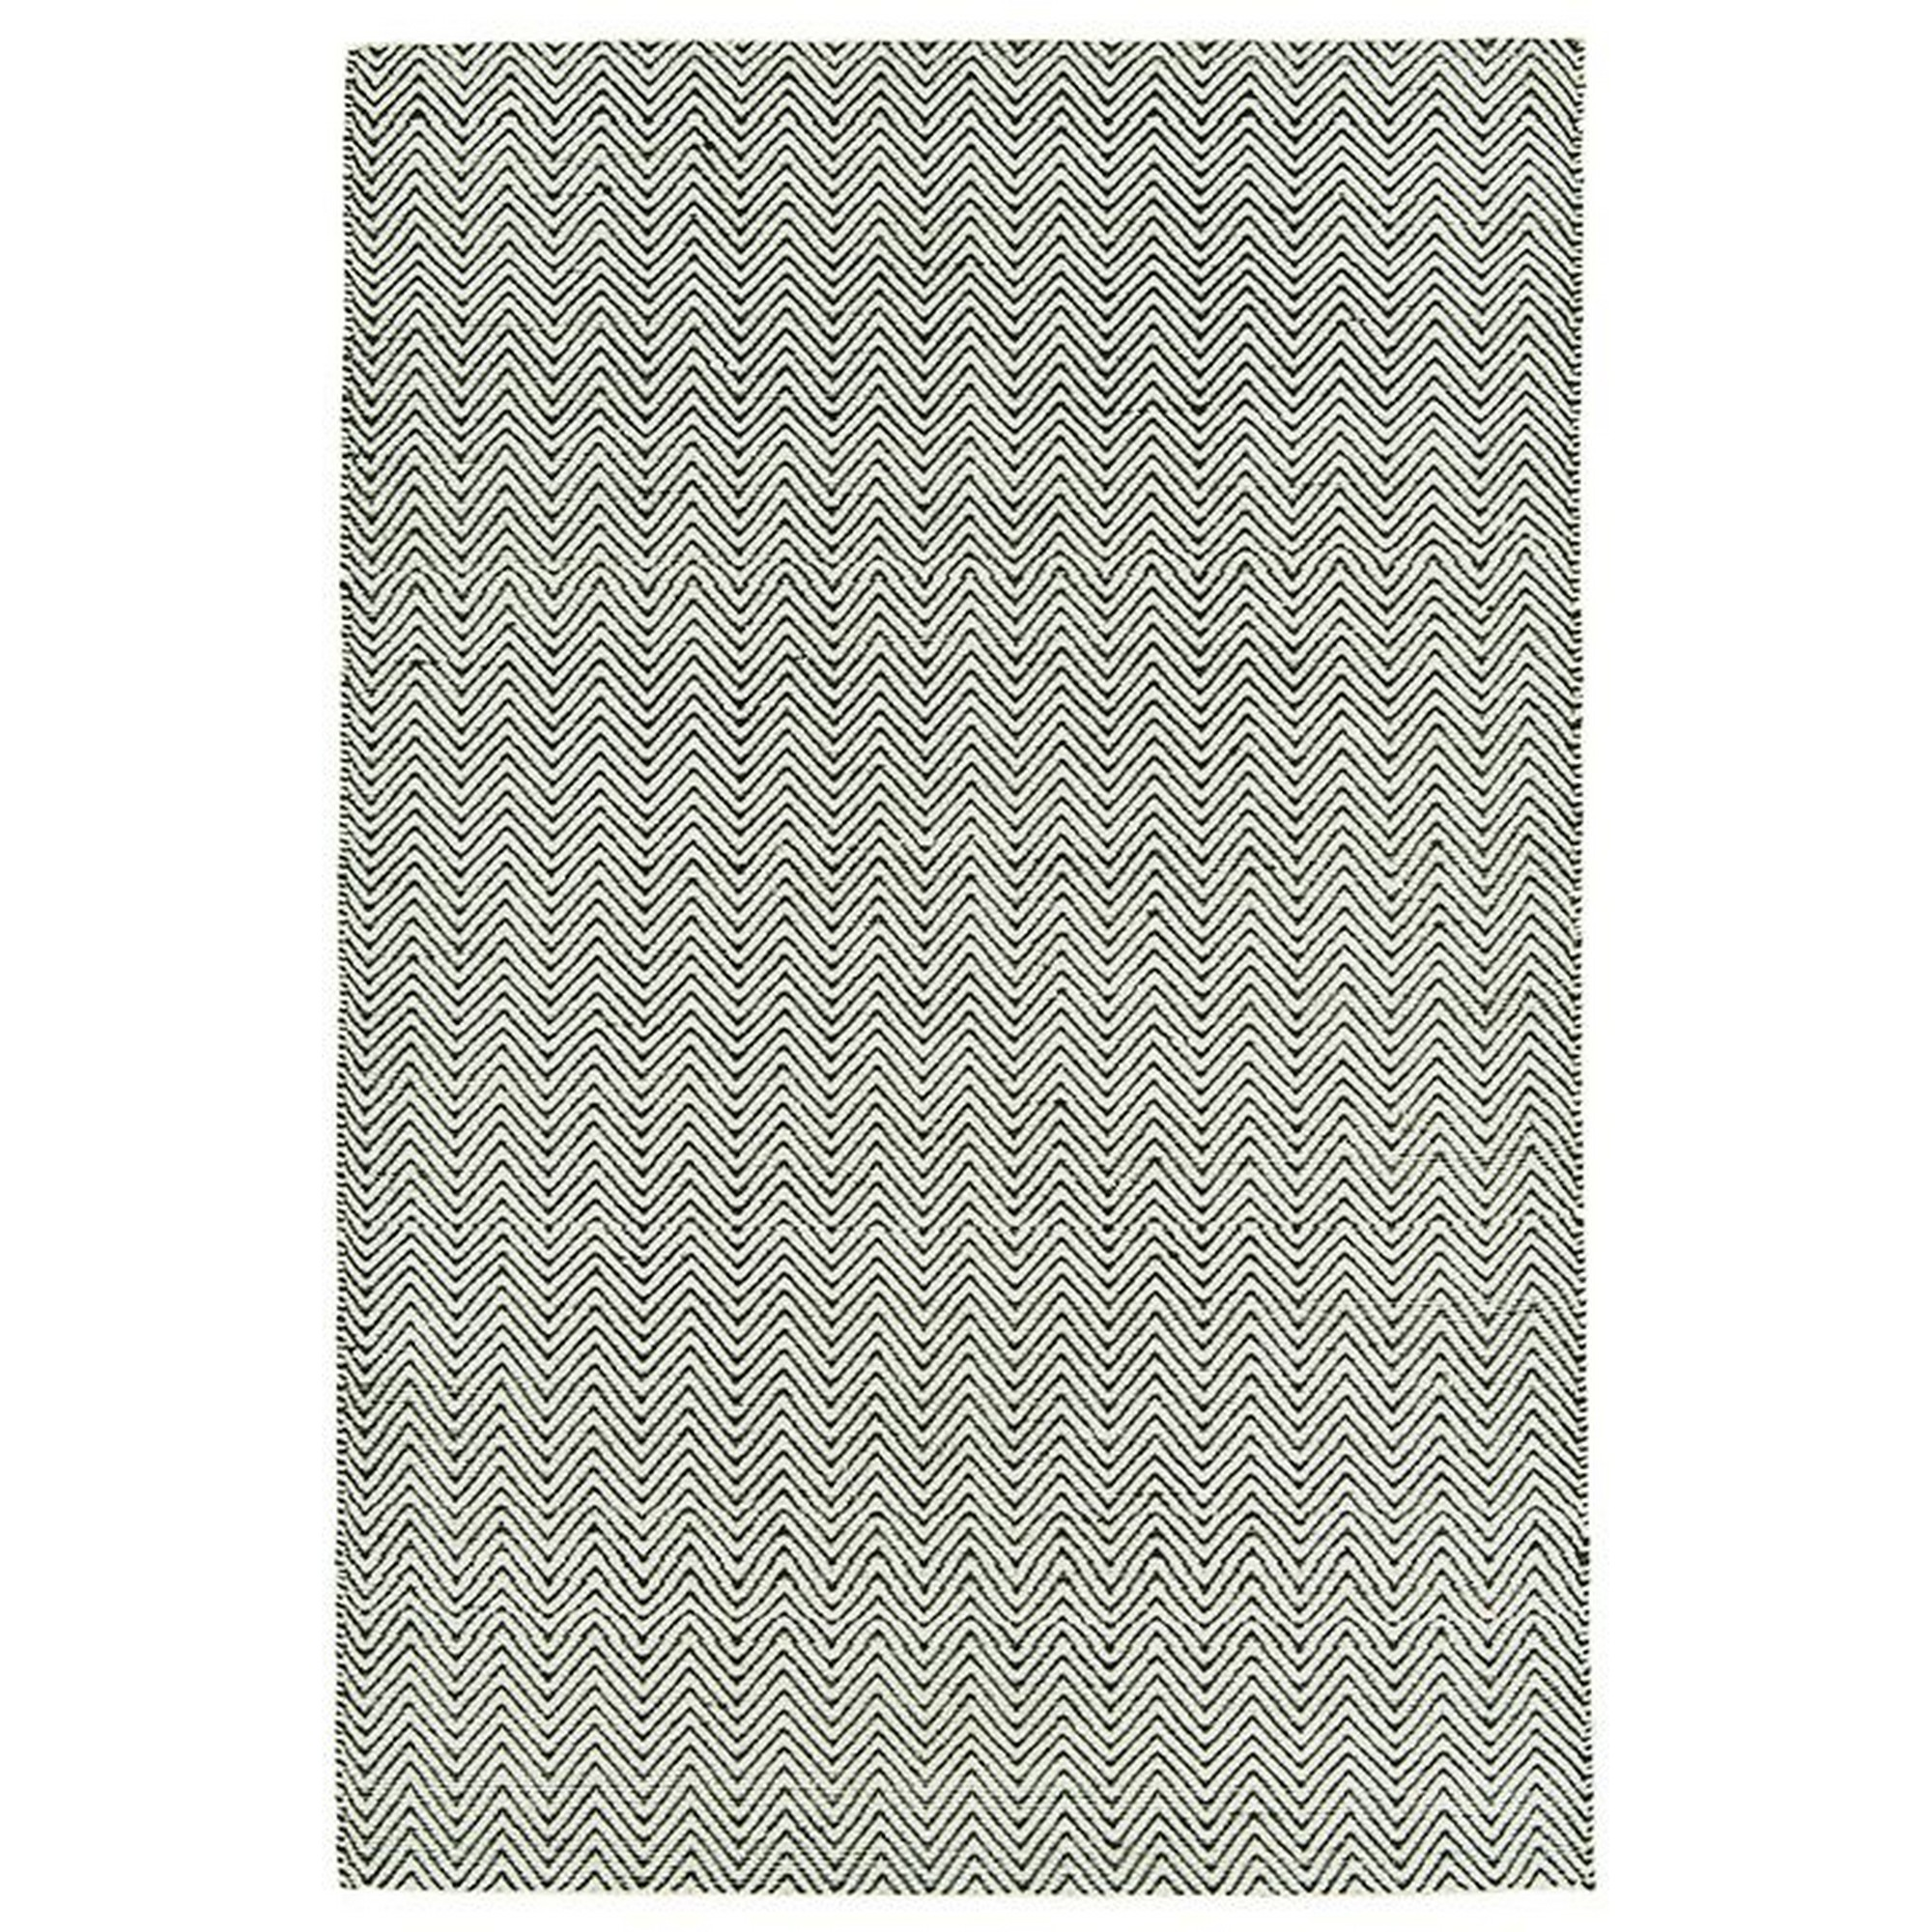 Ives Rugs in Black White